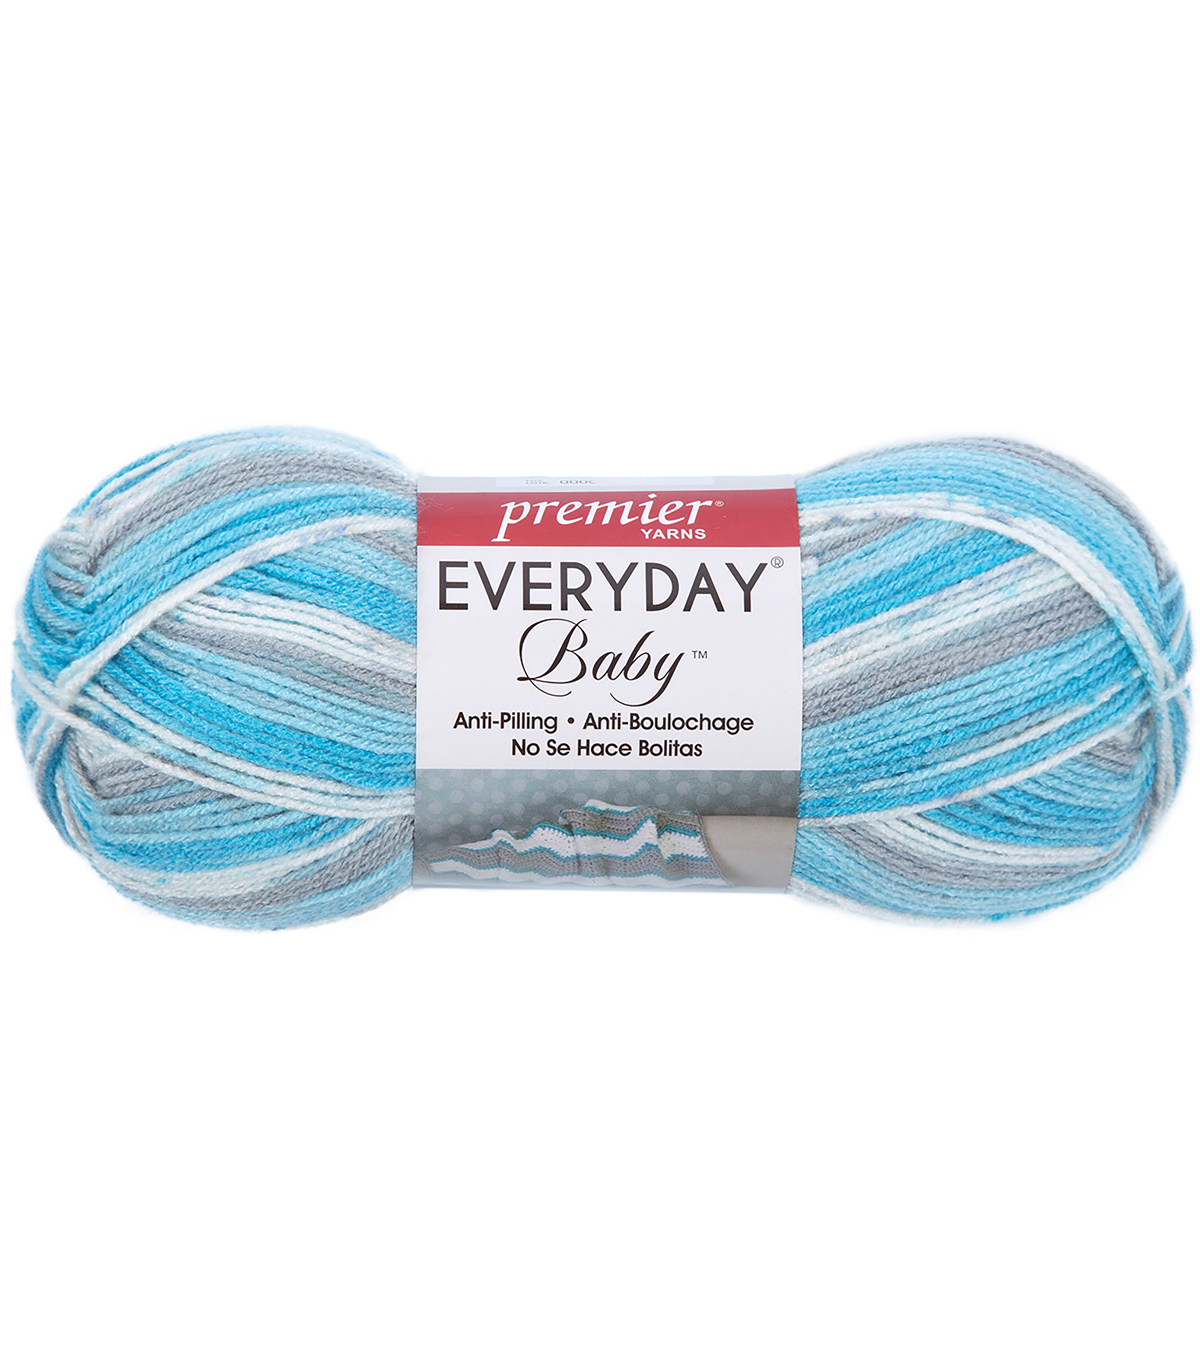 Premier Yarns Everyday Baby Yarn, Frosty